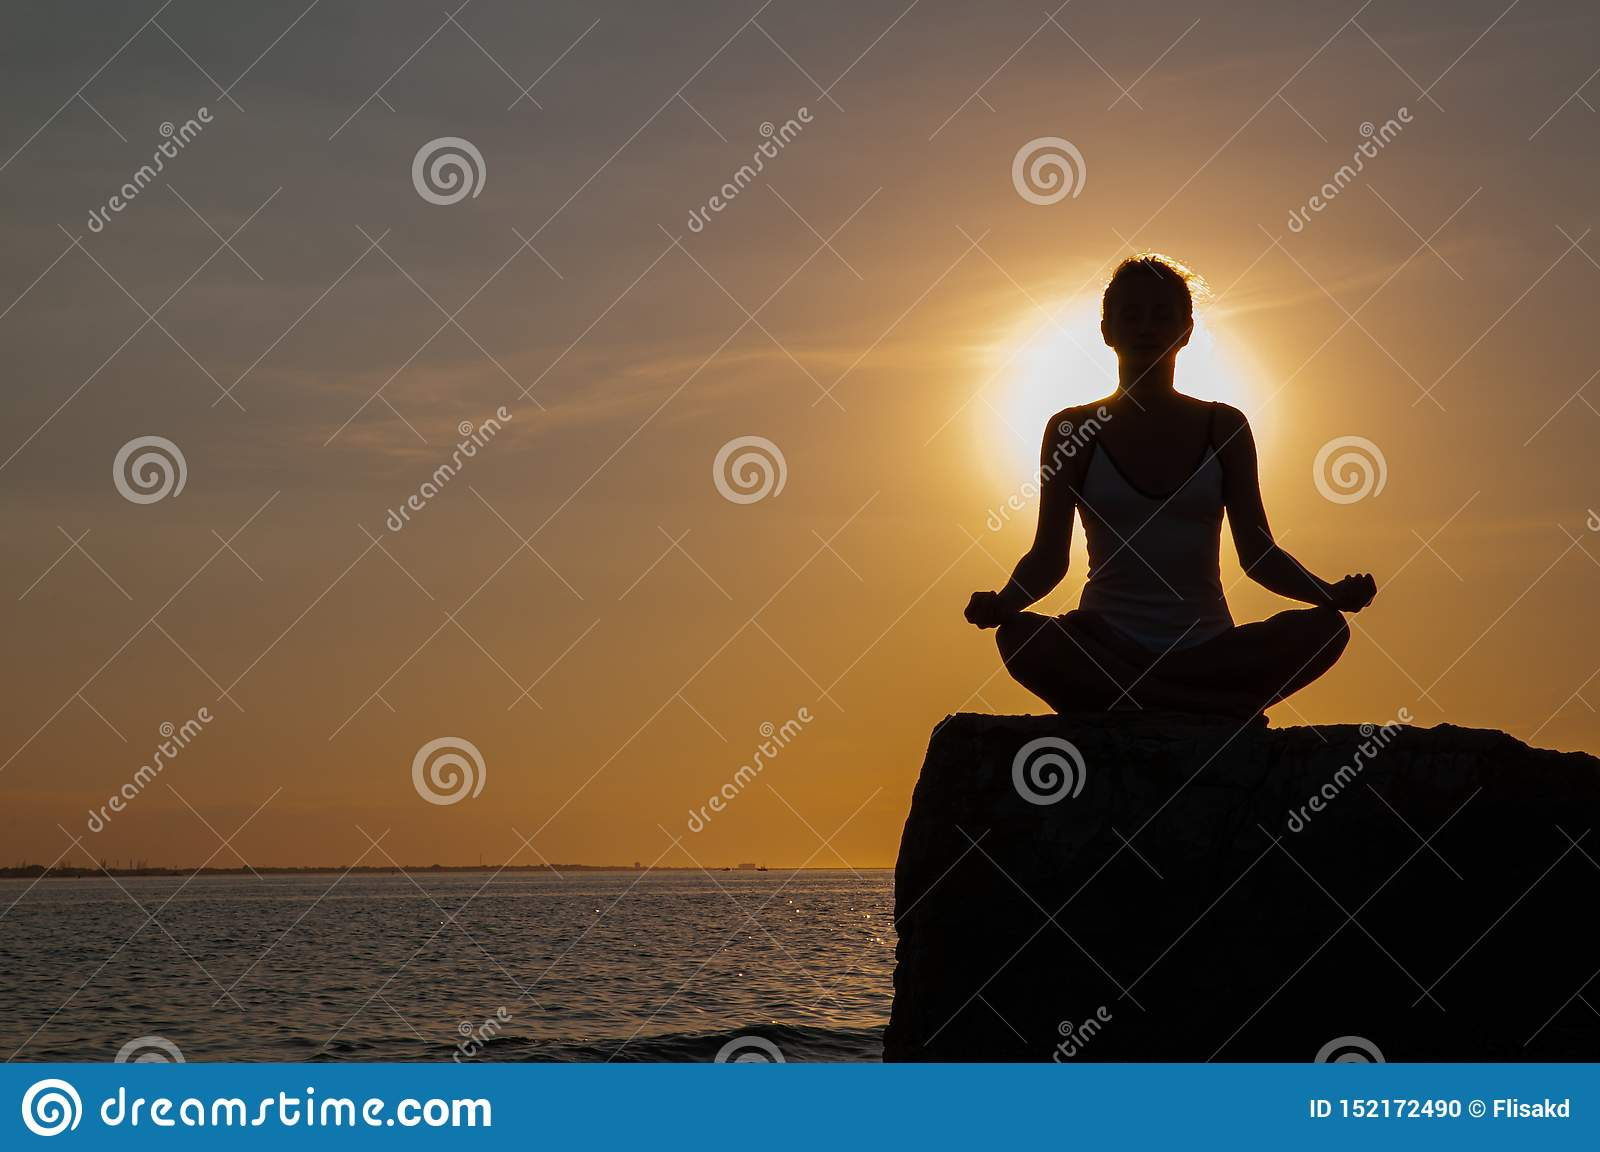 Woman is practicing yoga sitting on stone in Lotus pose at sunset. Silhouette of woman meditating on the beach